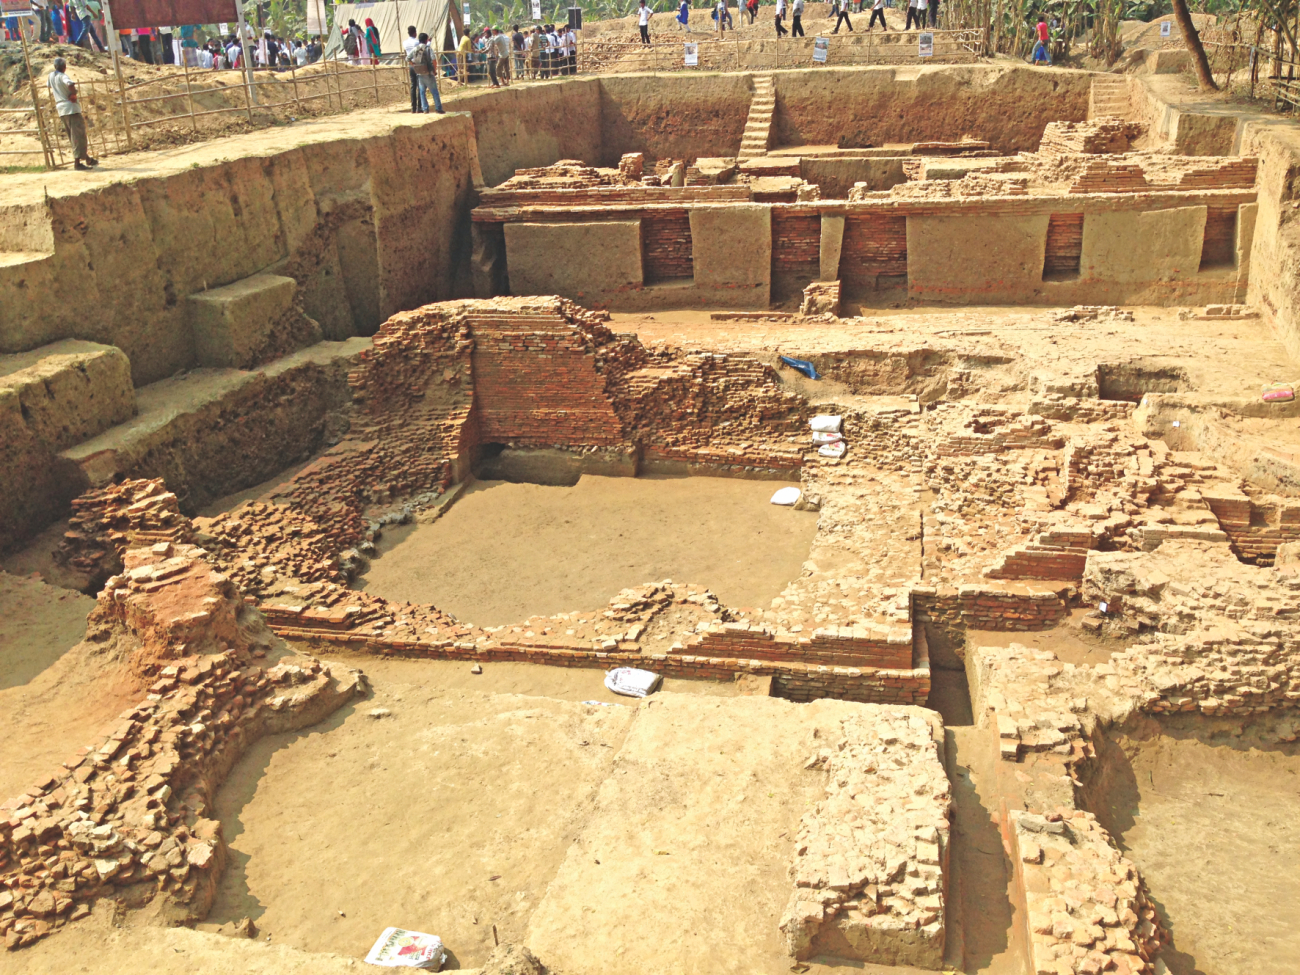 Going back to Atish Dipankar Era, 1,000-year-old Buddhist temple found in Munshiganj